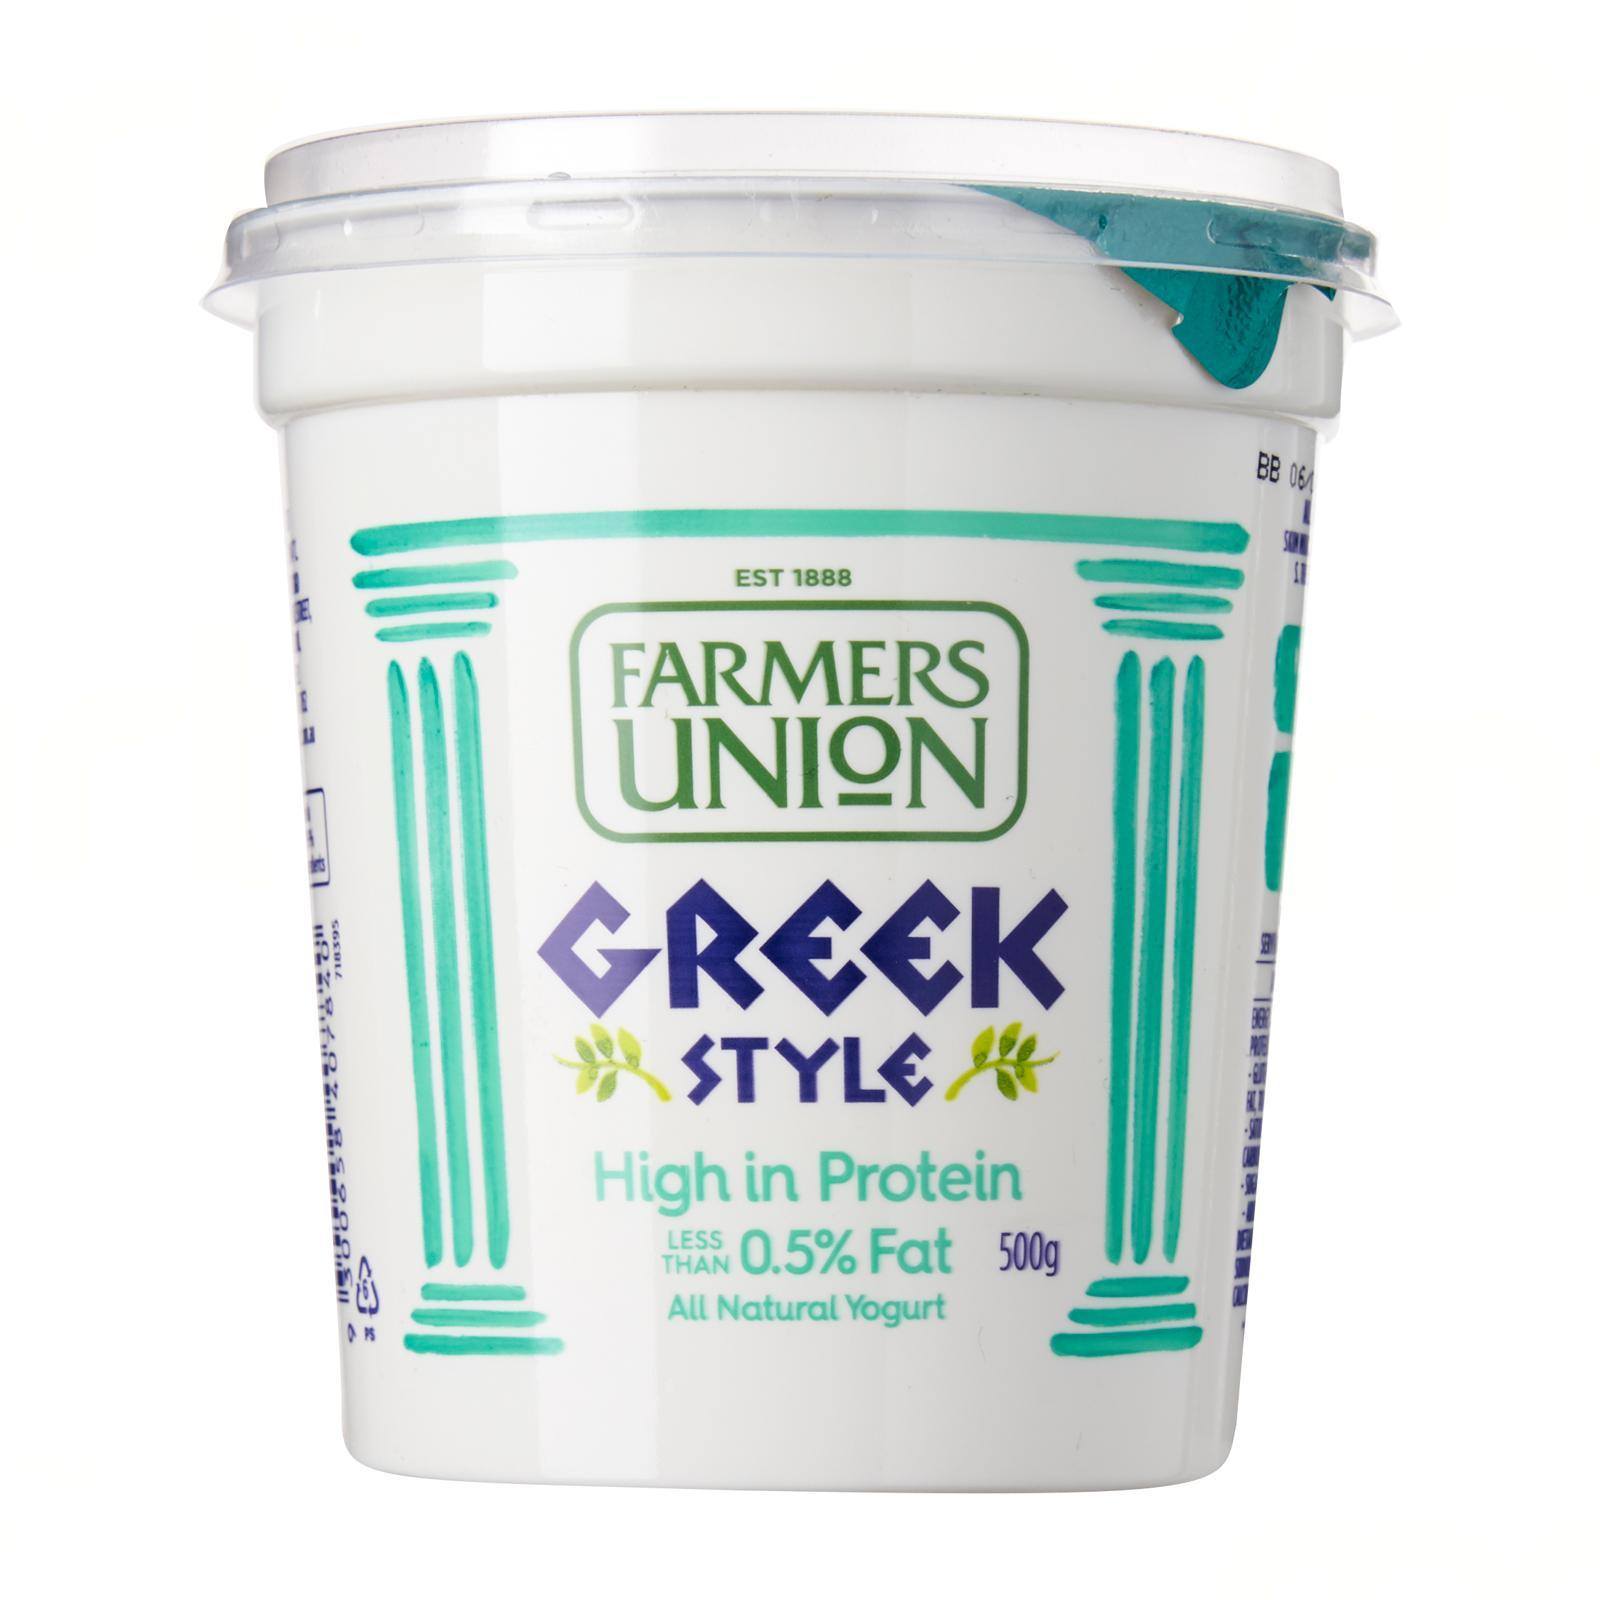 Farmers Union Greek Style Yoghurt 0.5% Fat